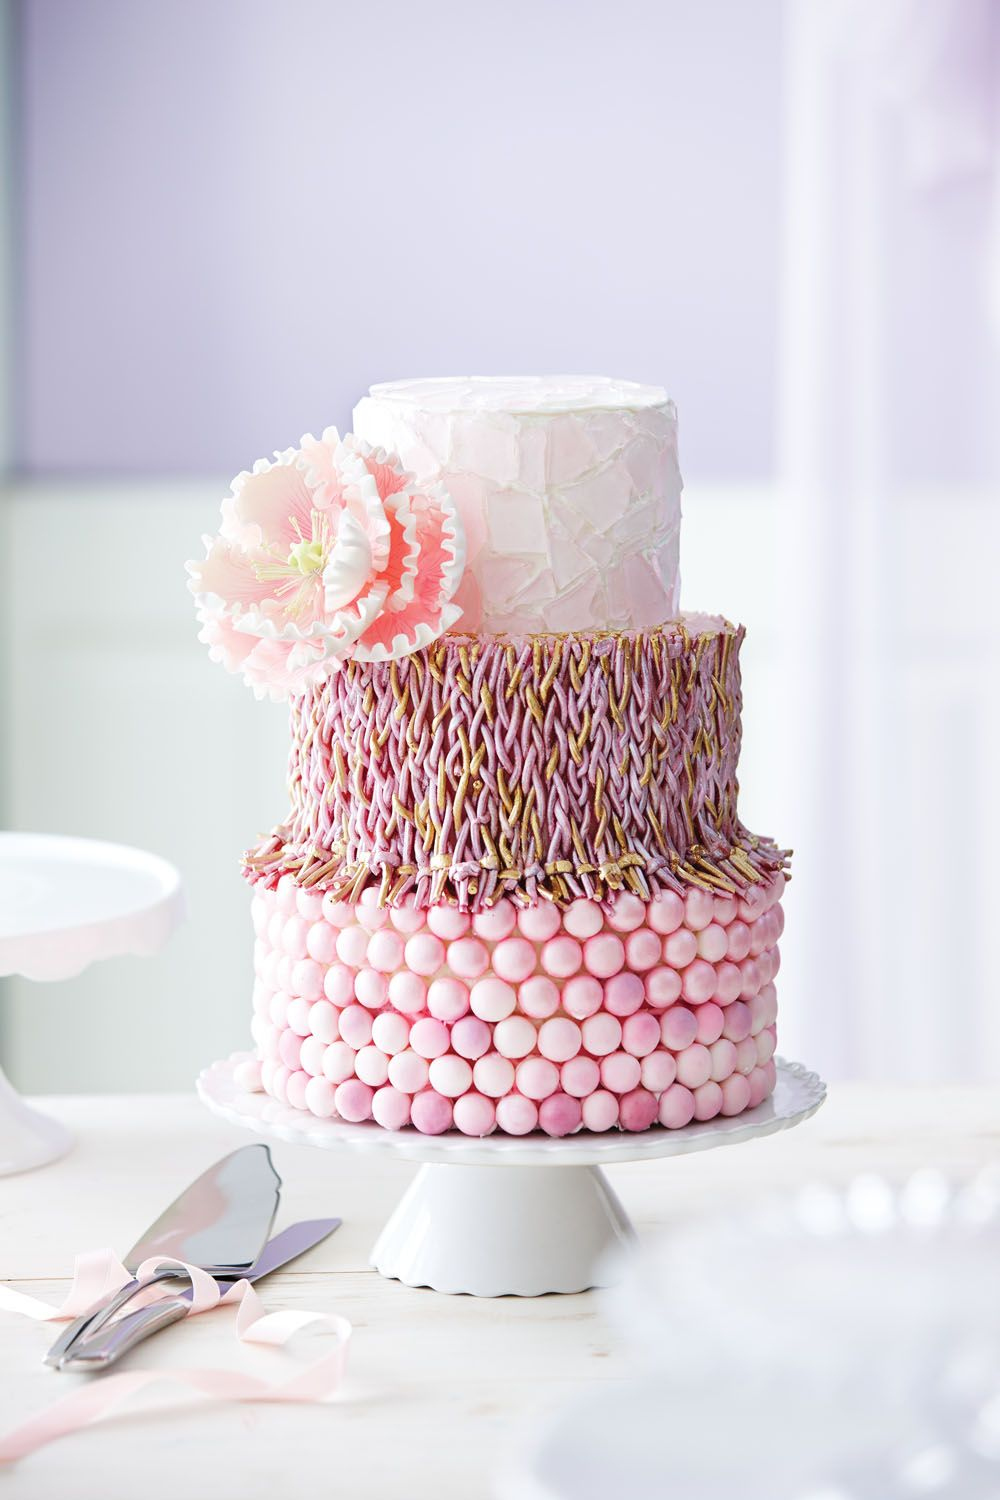 Candy-Covered Wedding Cakes Guaranteed To Impress Your Guests